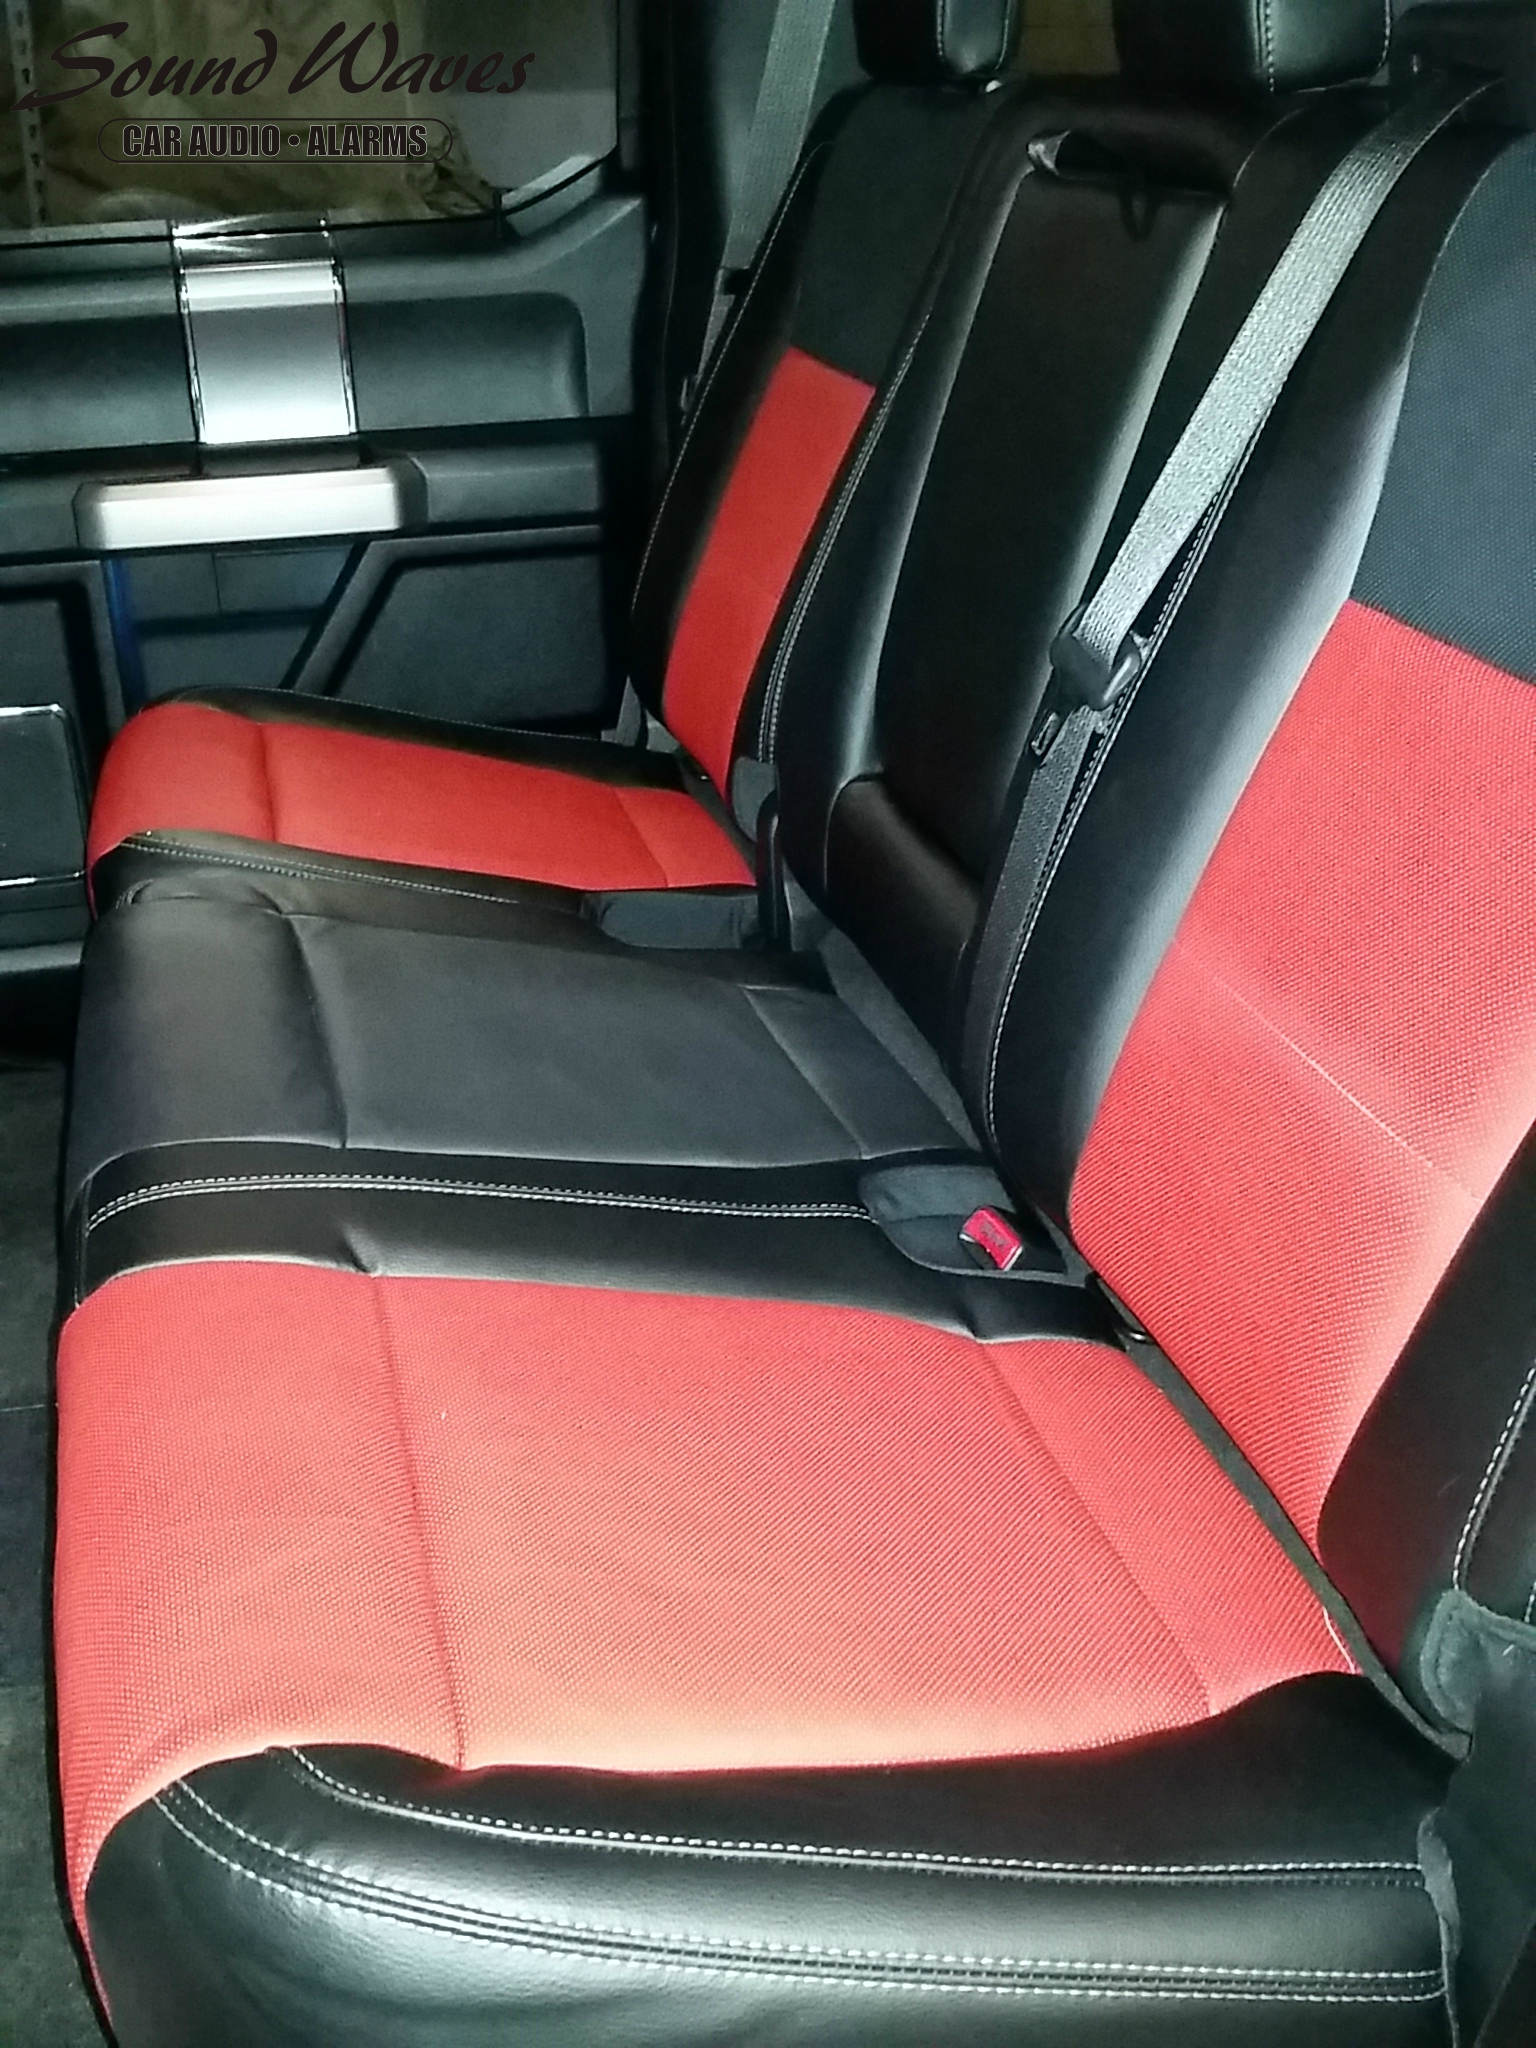 Rear Seat After